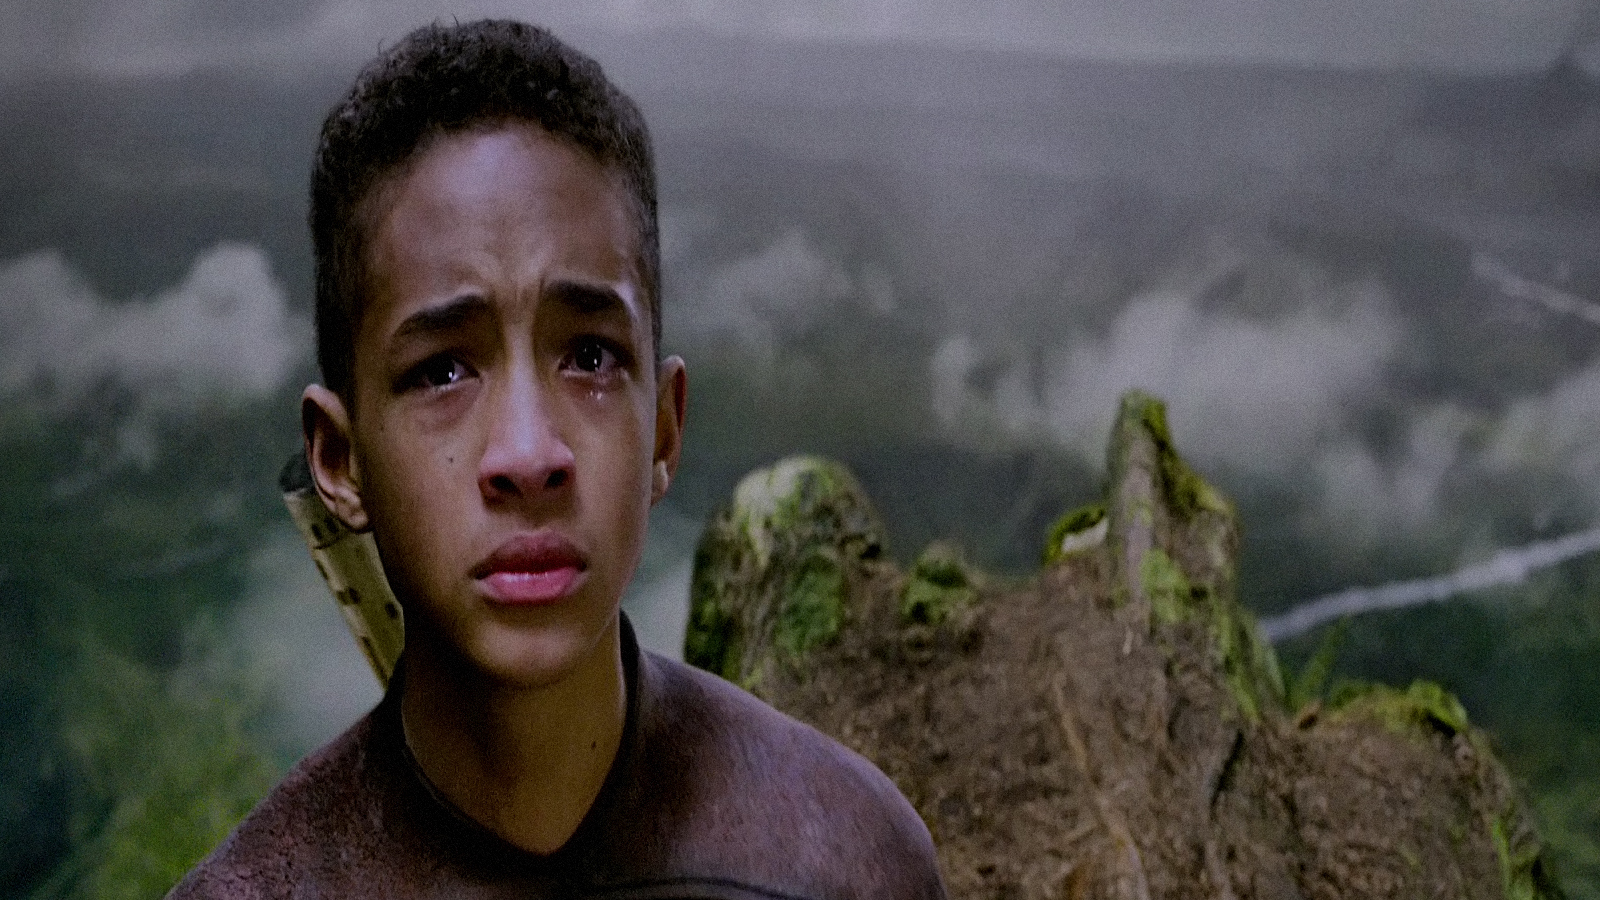 Jaden Smith After Earth fear crying